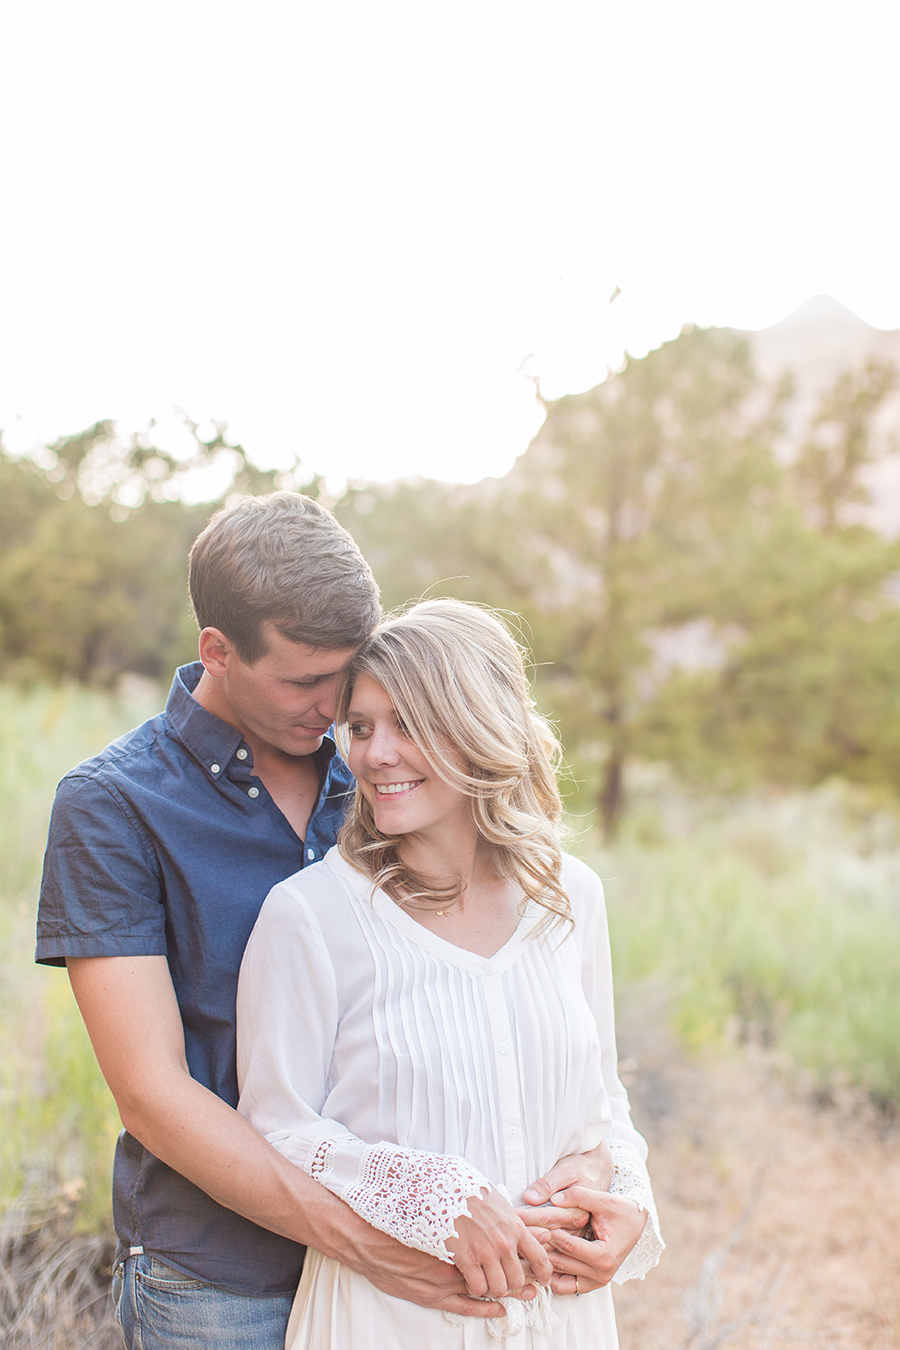 Kelleymitchengagements2014 (51 of 109).jpg